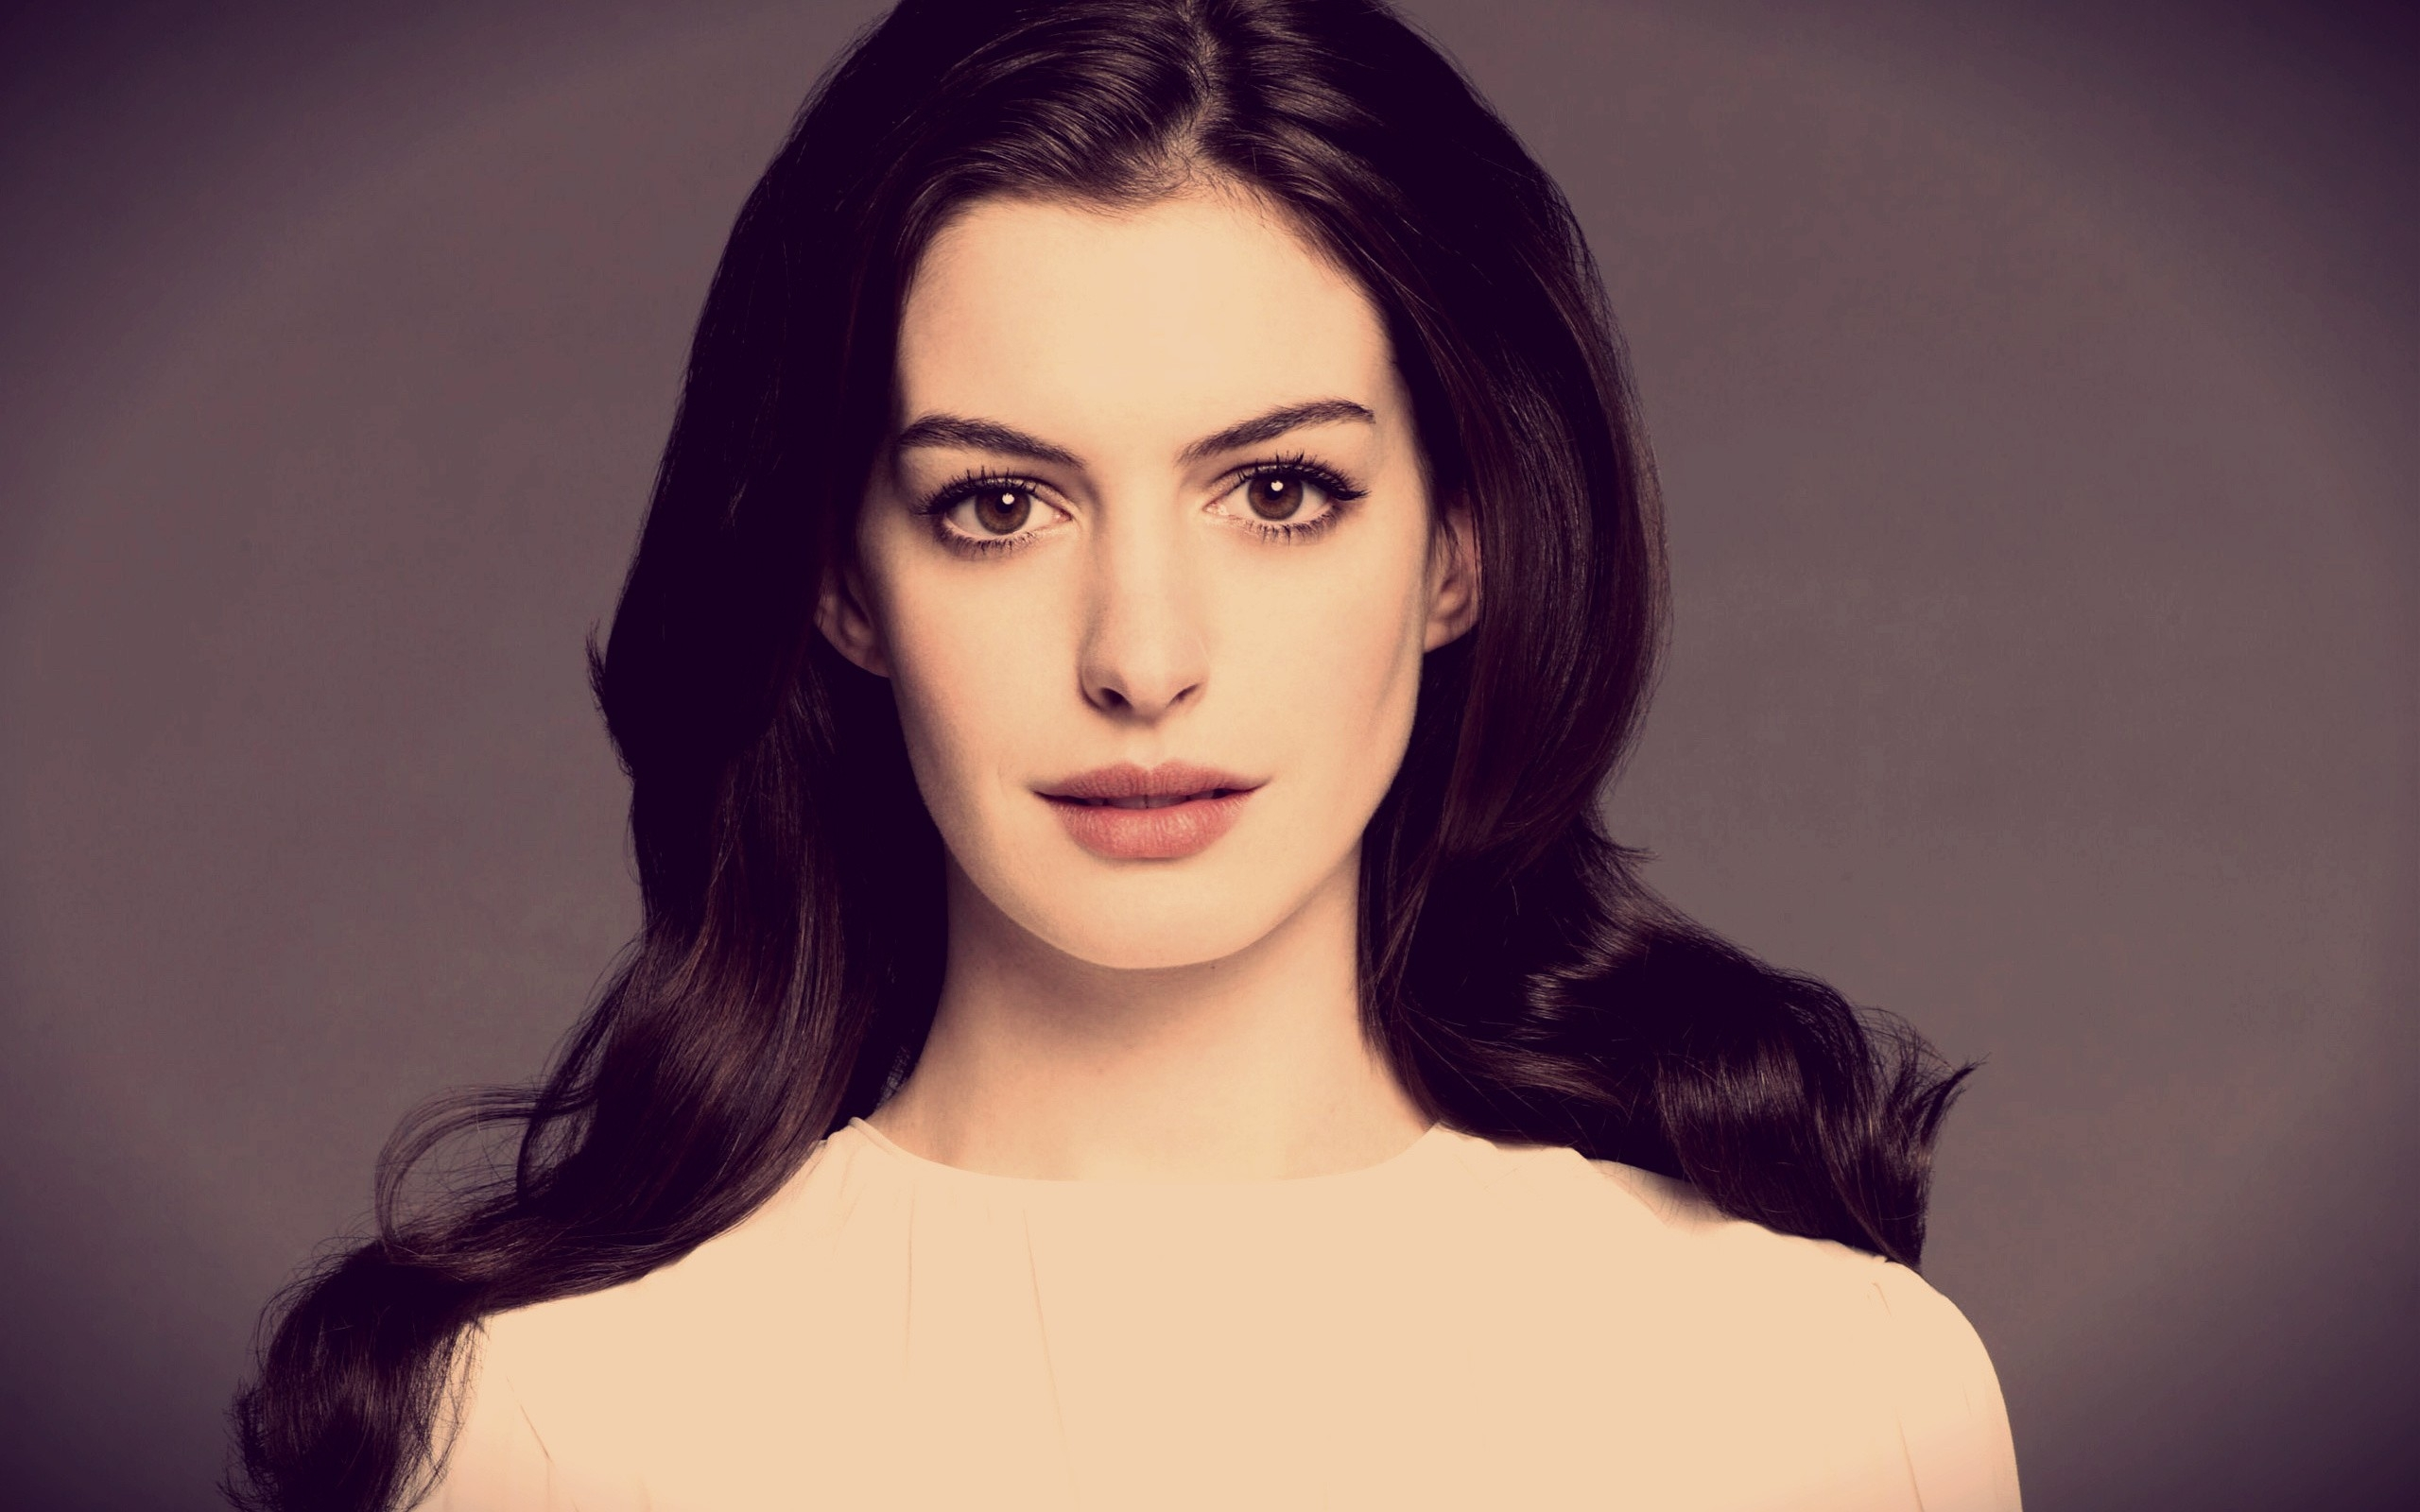 Anne Hathaway Brunette Actress